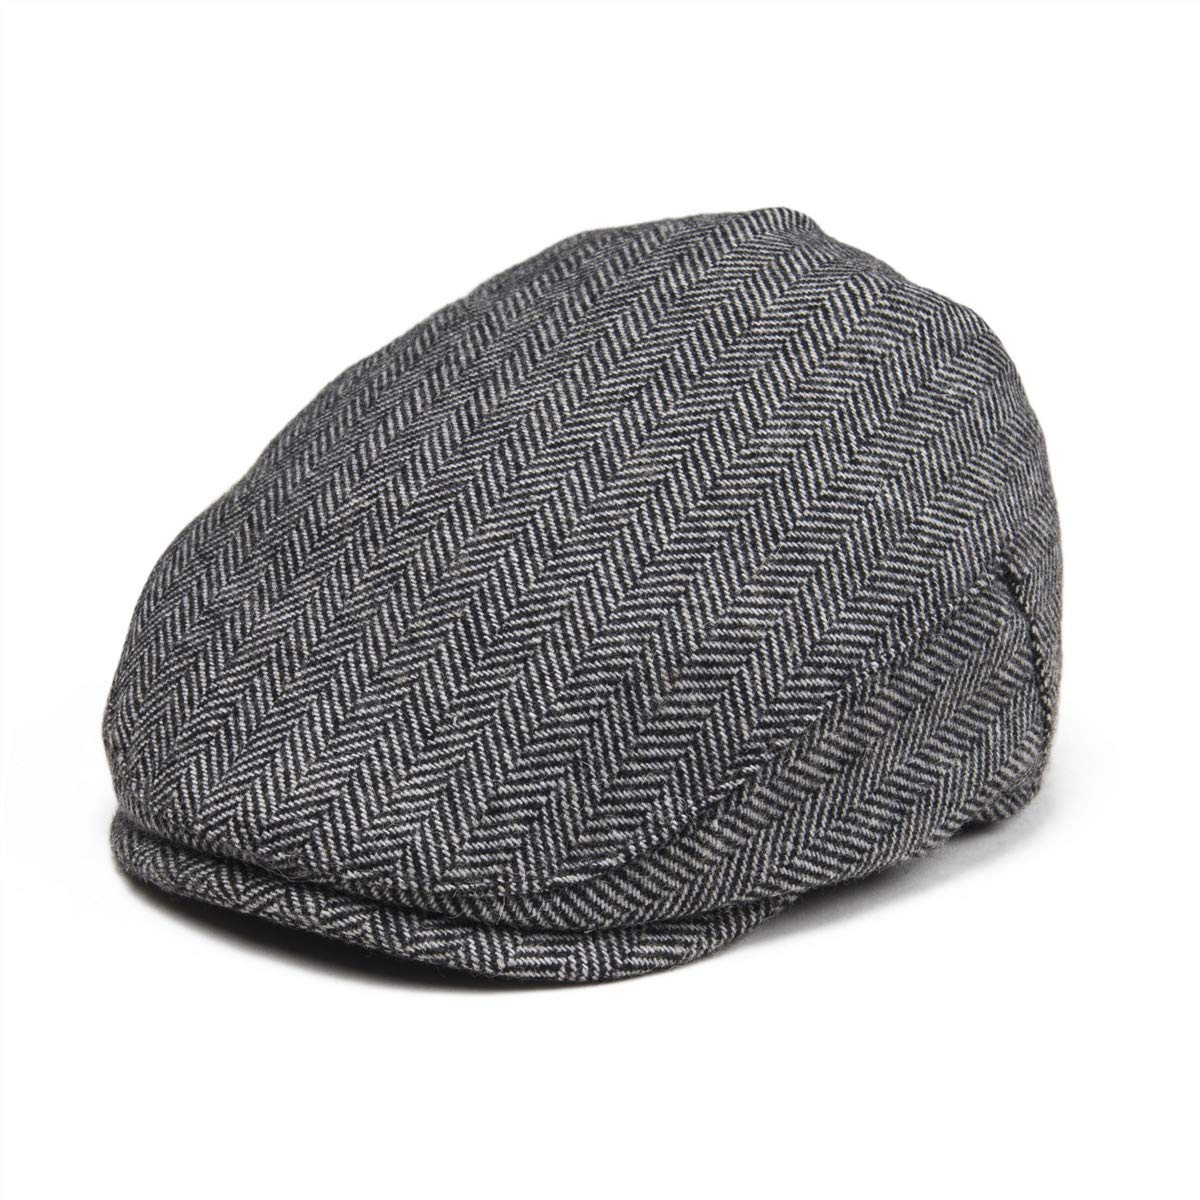 93f6055b JANGOUL Kids Wool Tweed Flat Cap Herringbone Boy Girl Newsboy Caps Infant  Toddler Child Youth Beret Hat Ivy ...